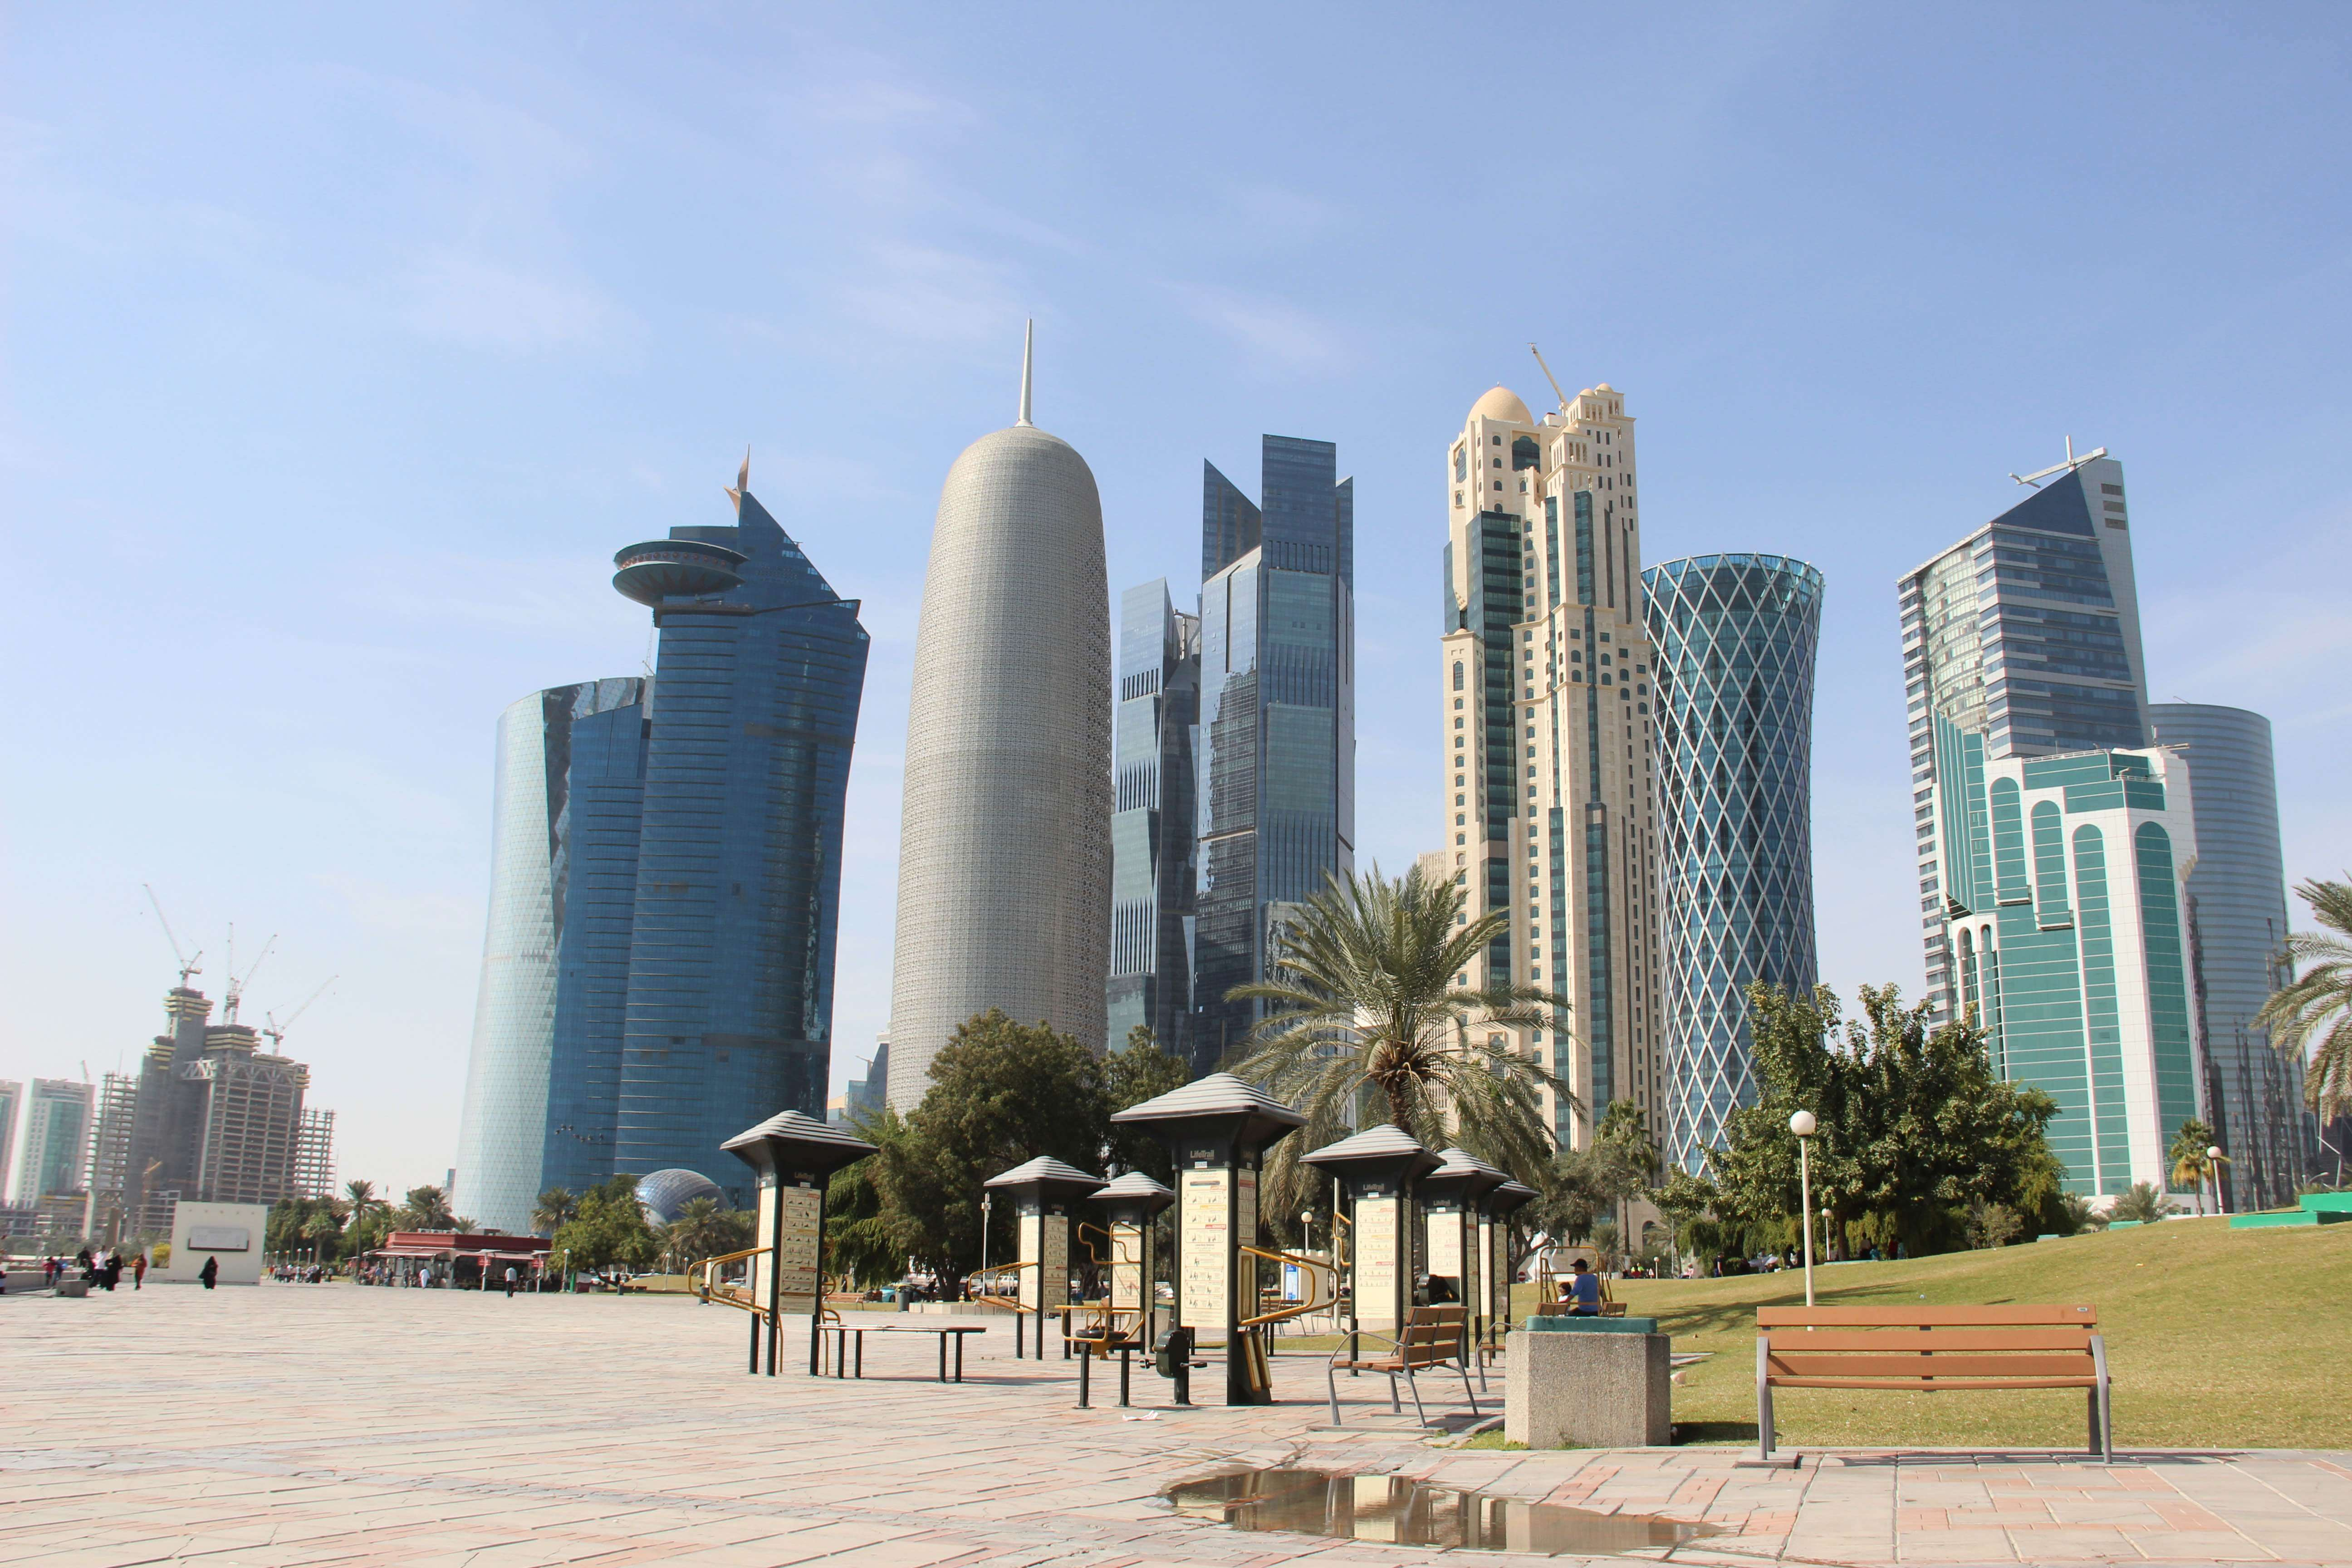 Weltreise_Backpacking_Katar_Doha